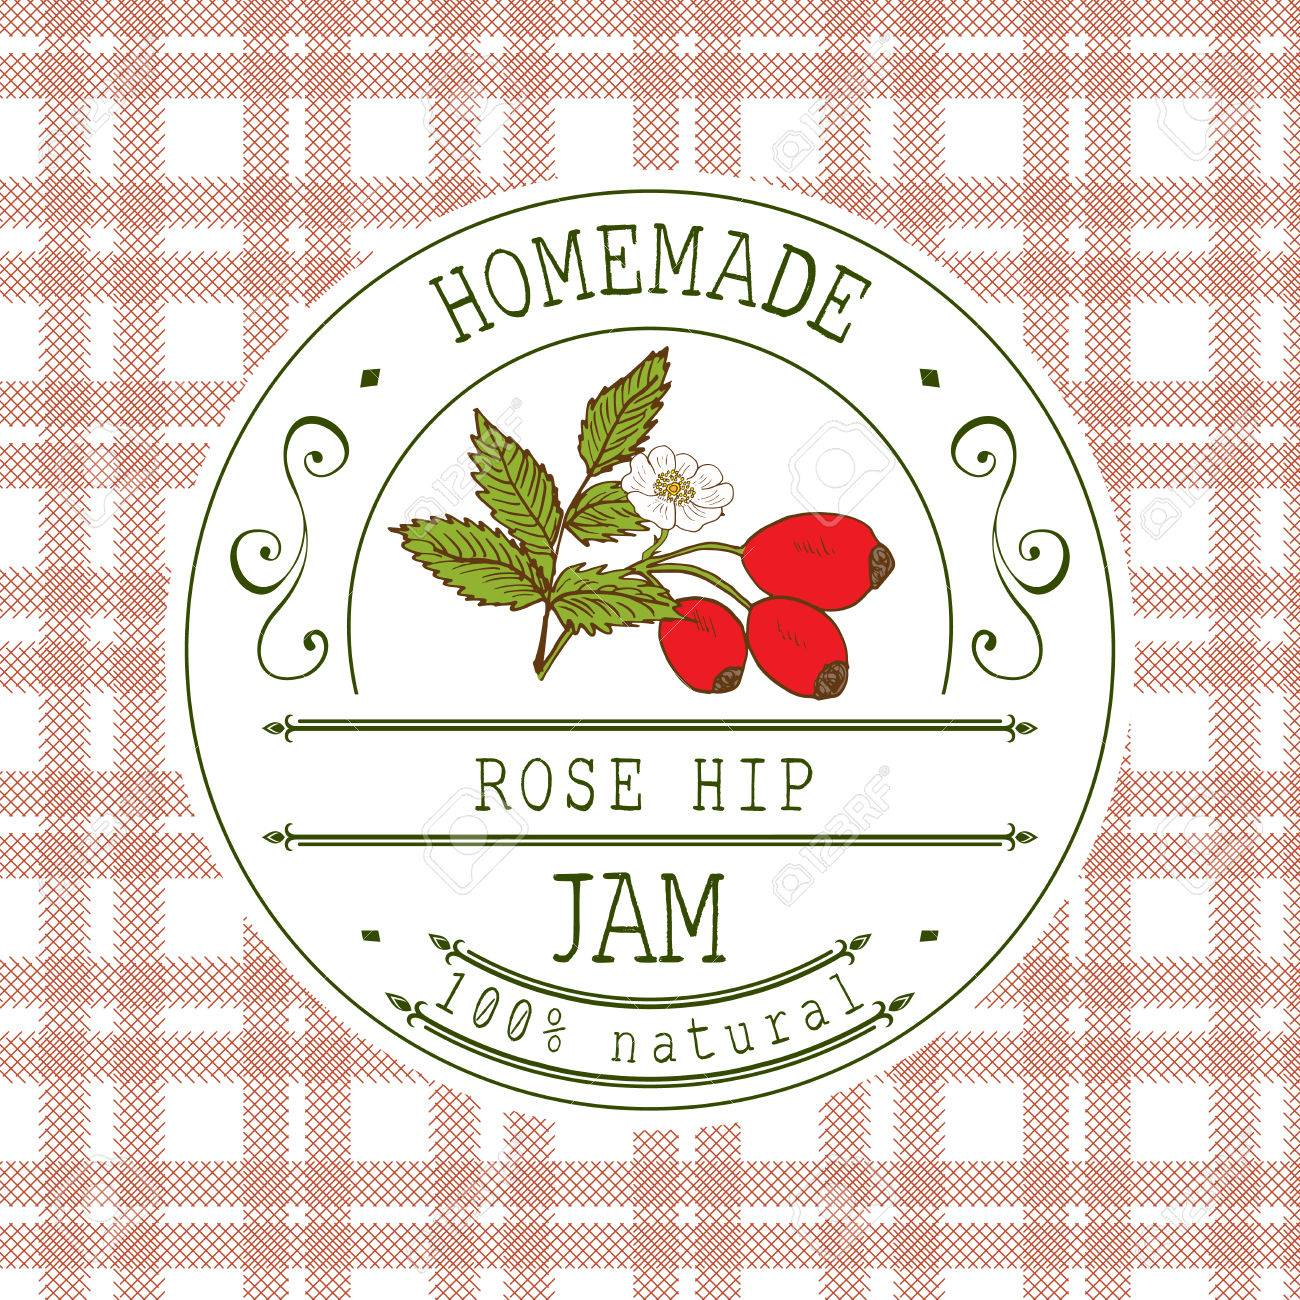 jam label design template for rose hip dessert product with